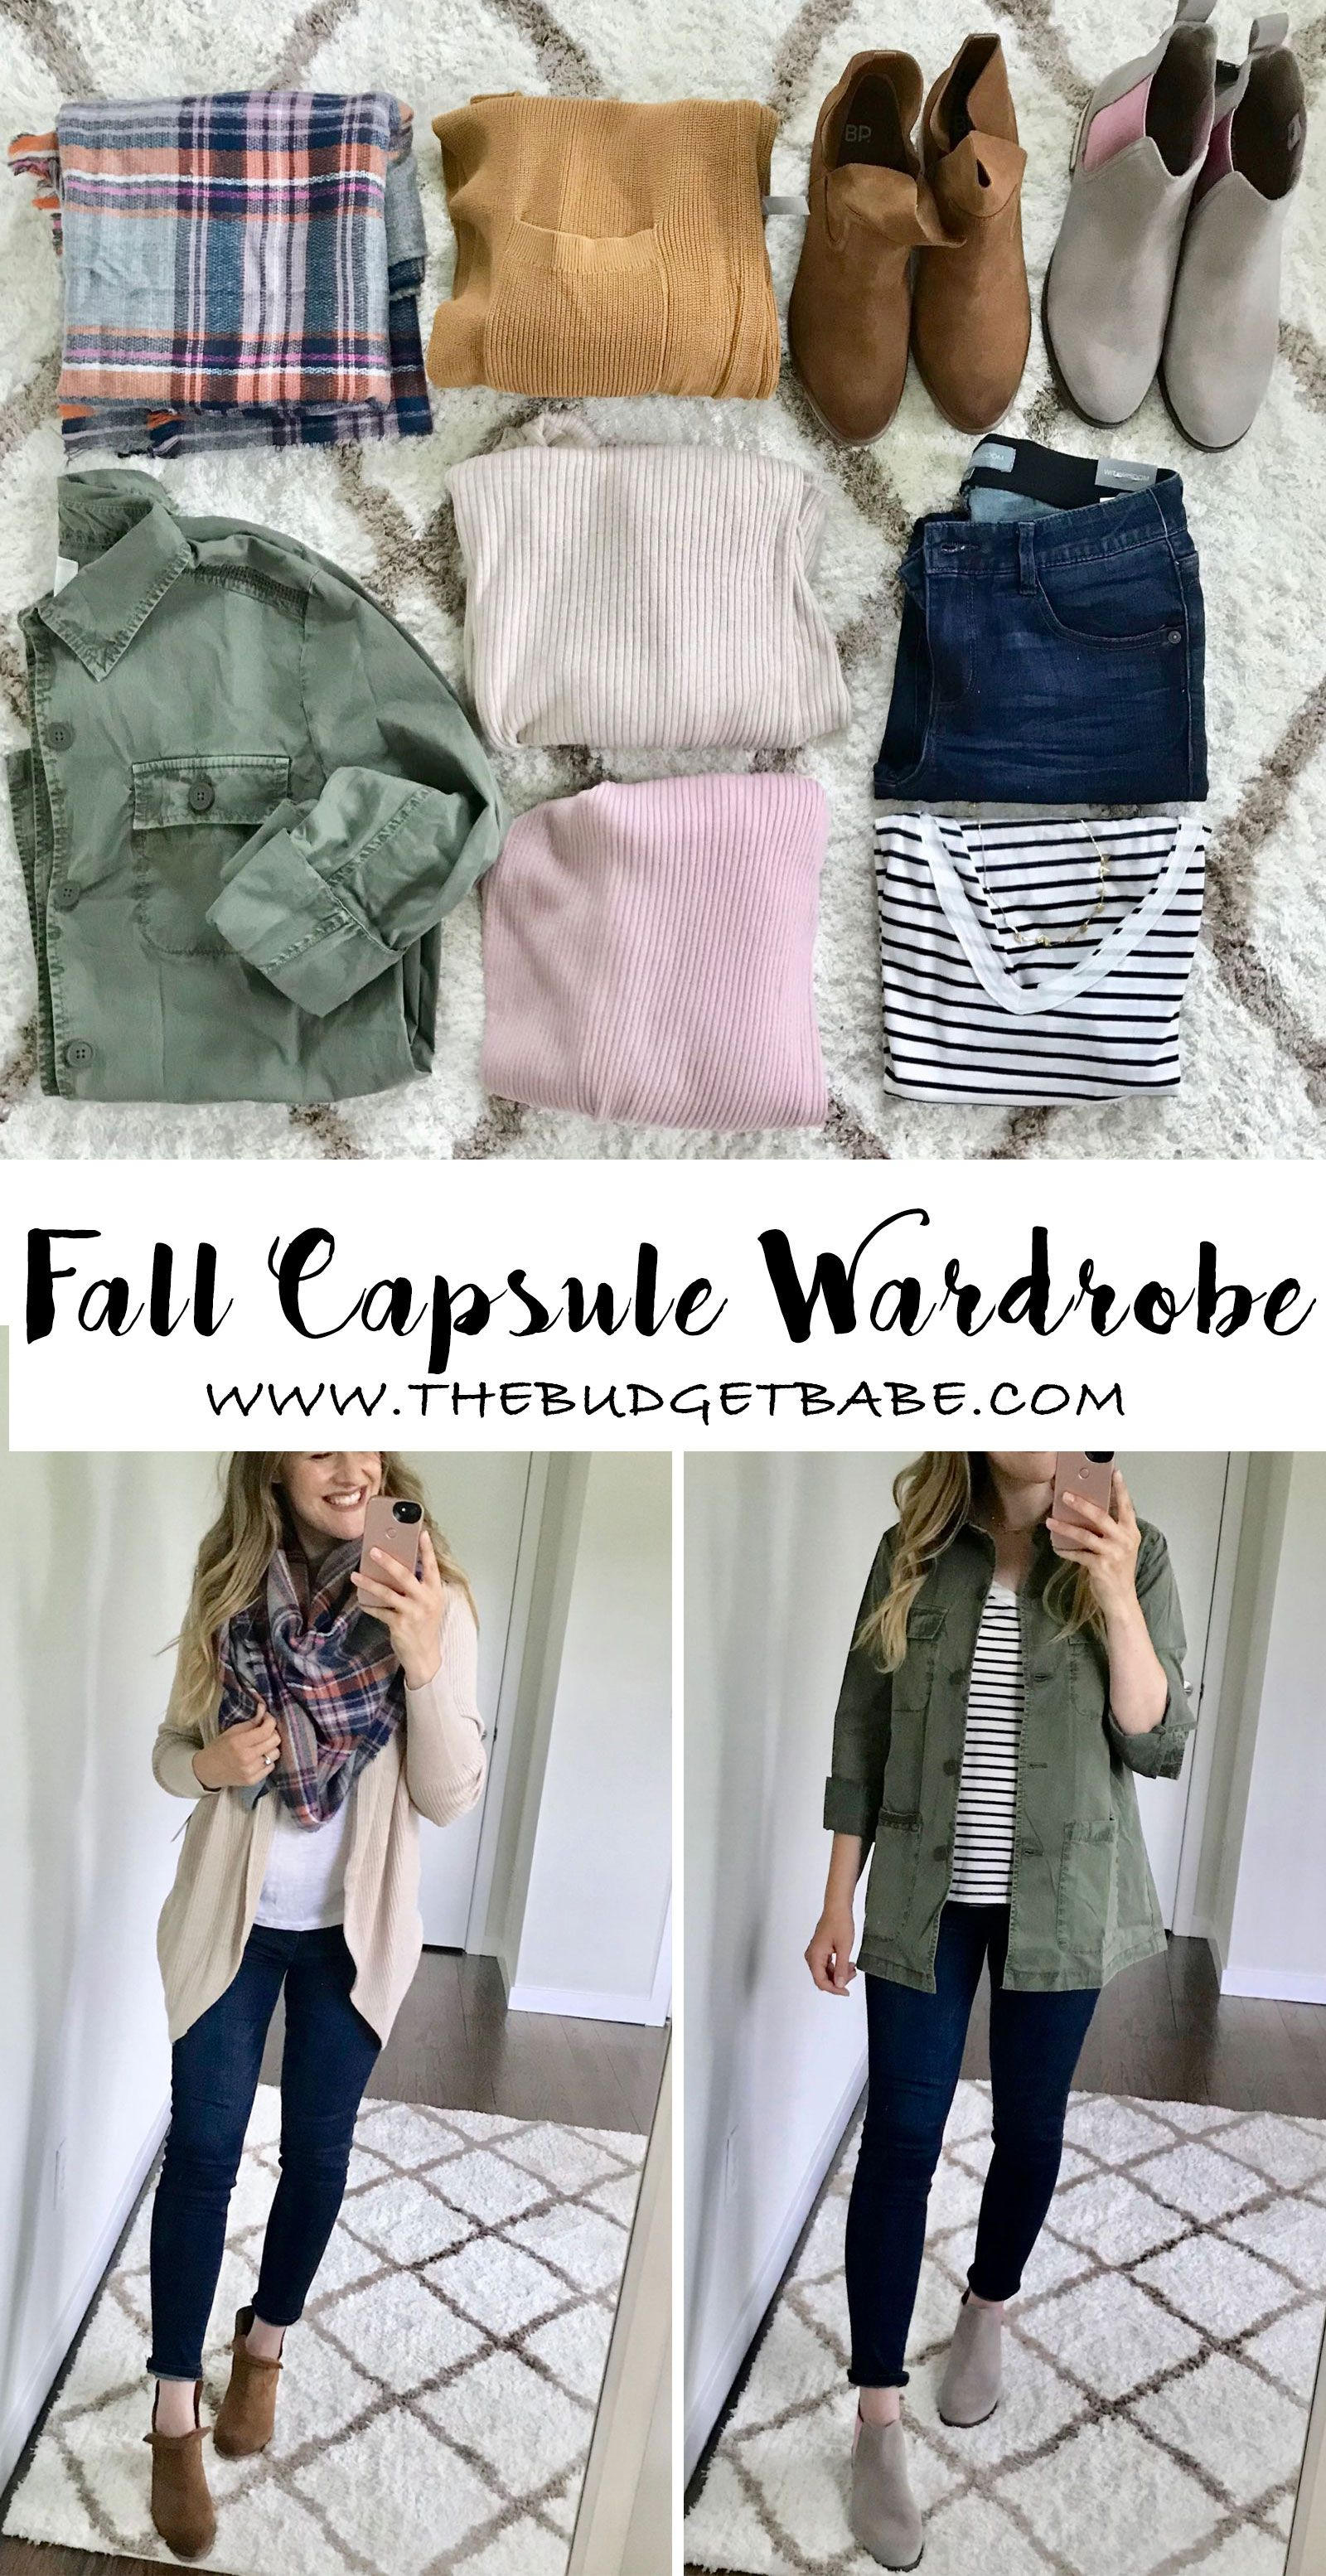 Fall Capsule wardrobe for stay-at-home moms, casual outfit ideas for fall + winter